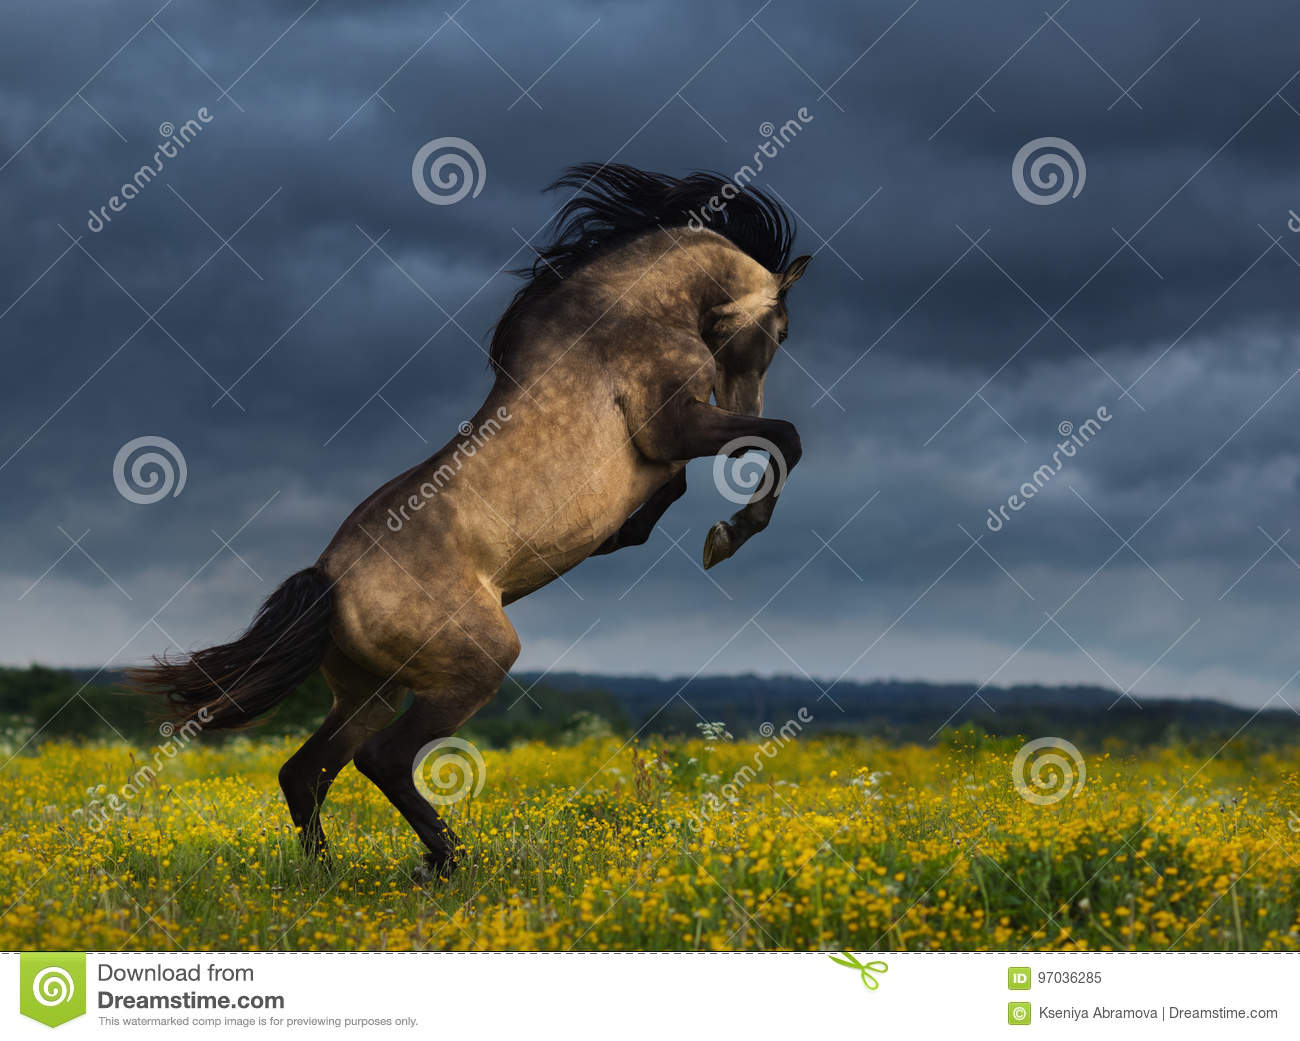 Purebred Andalusian horse rear on meadow with dramatic overcast